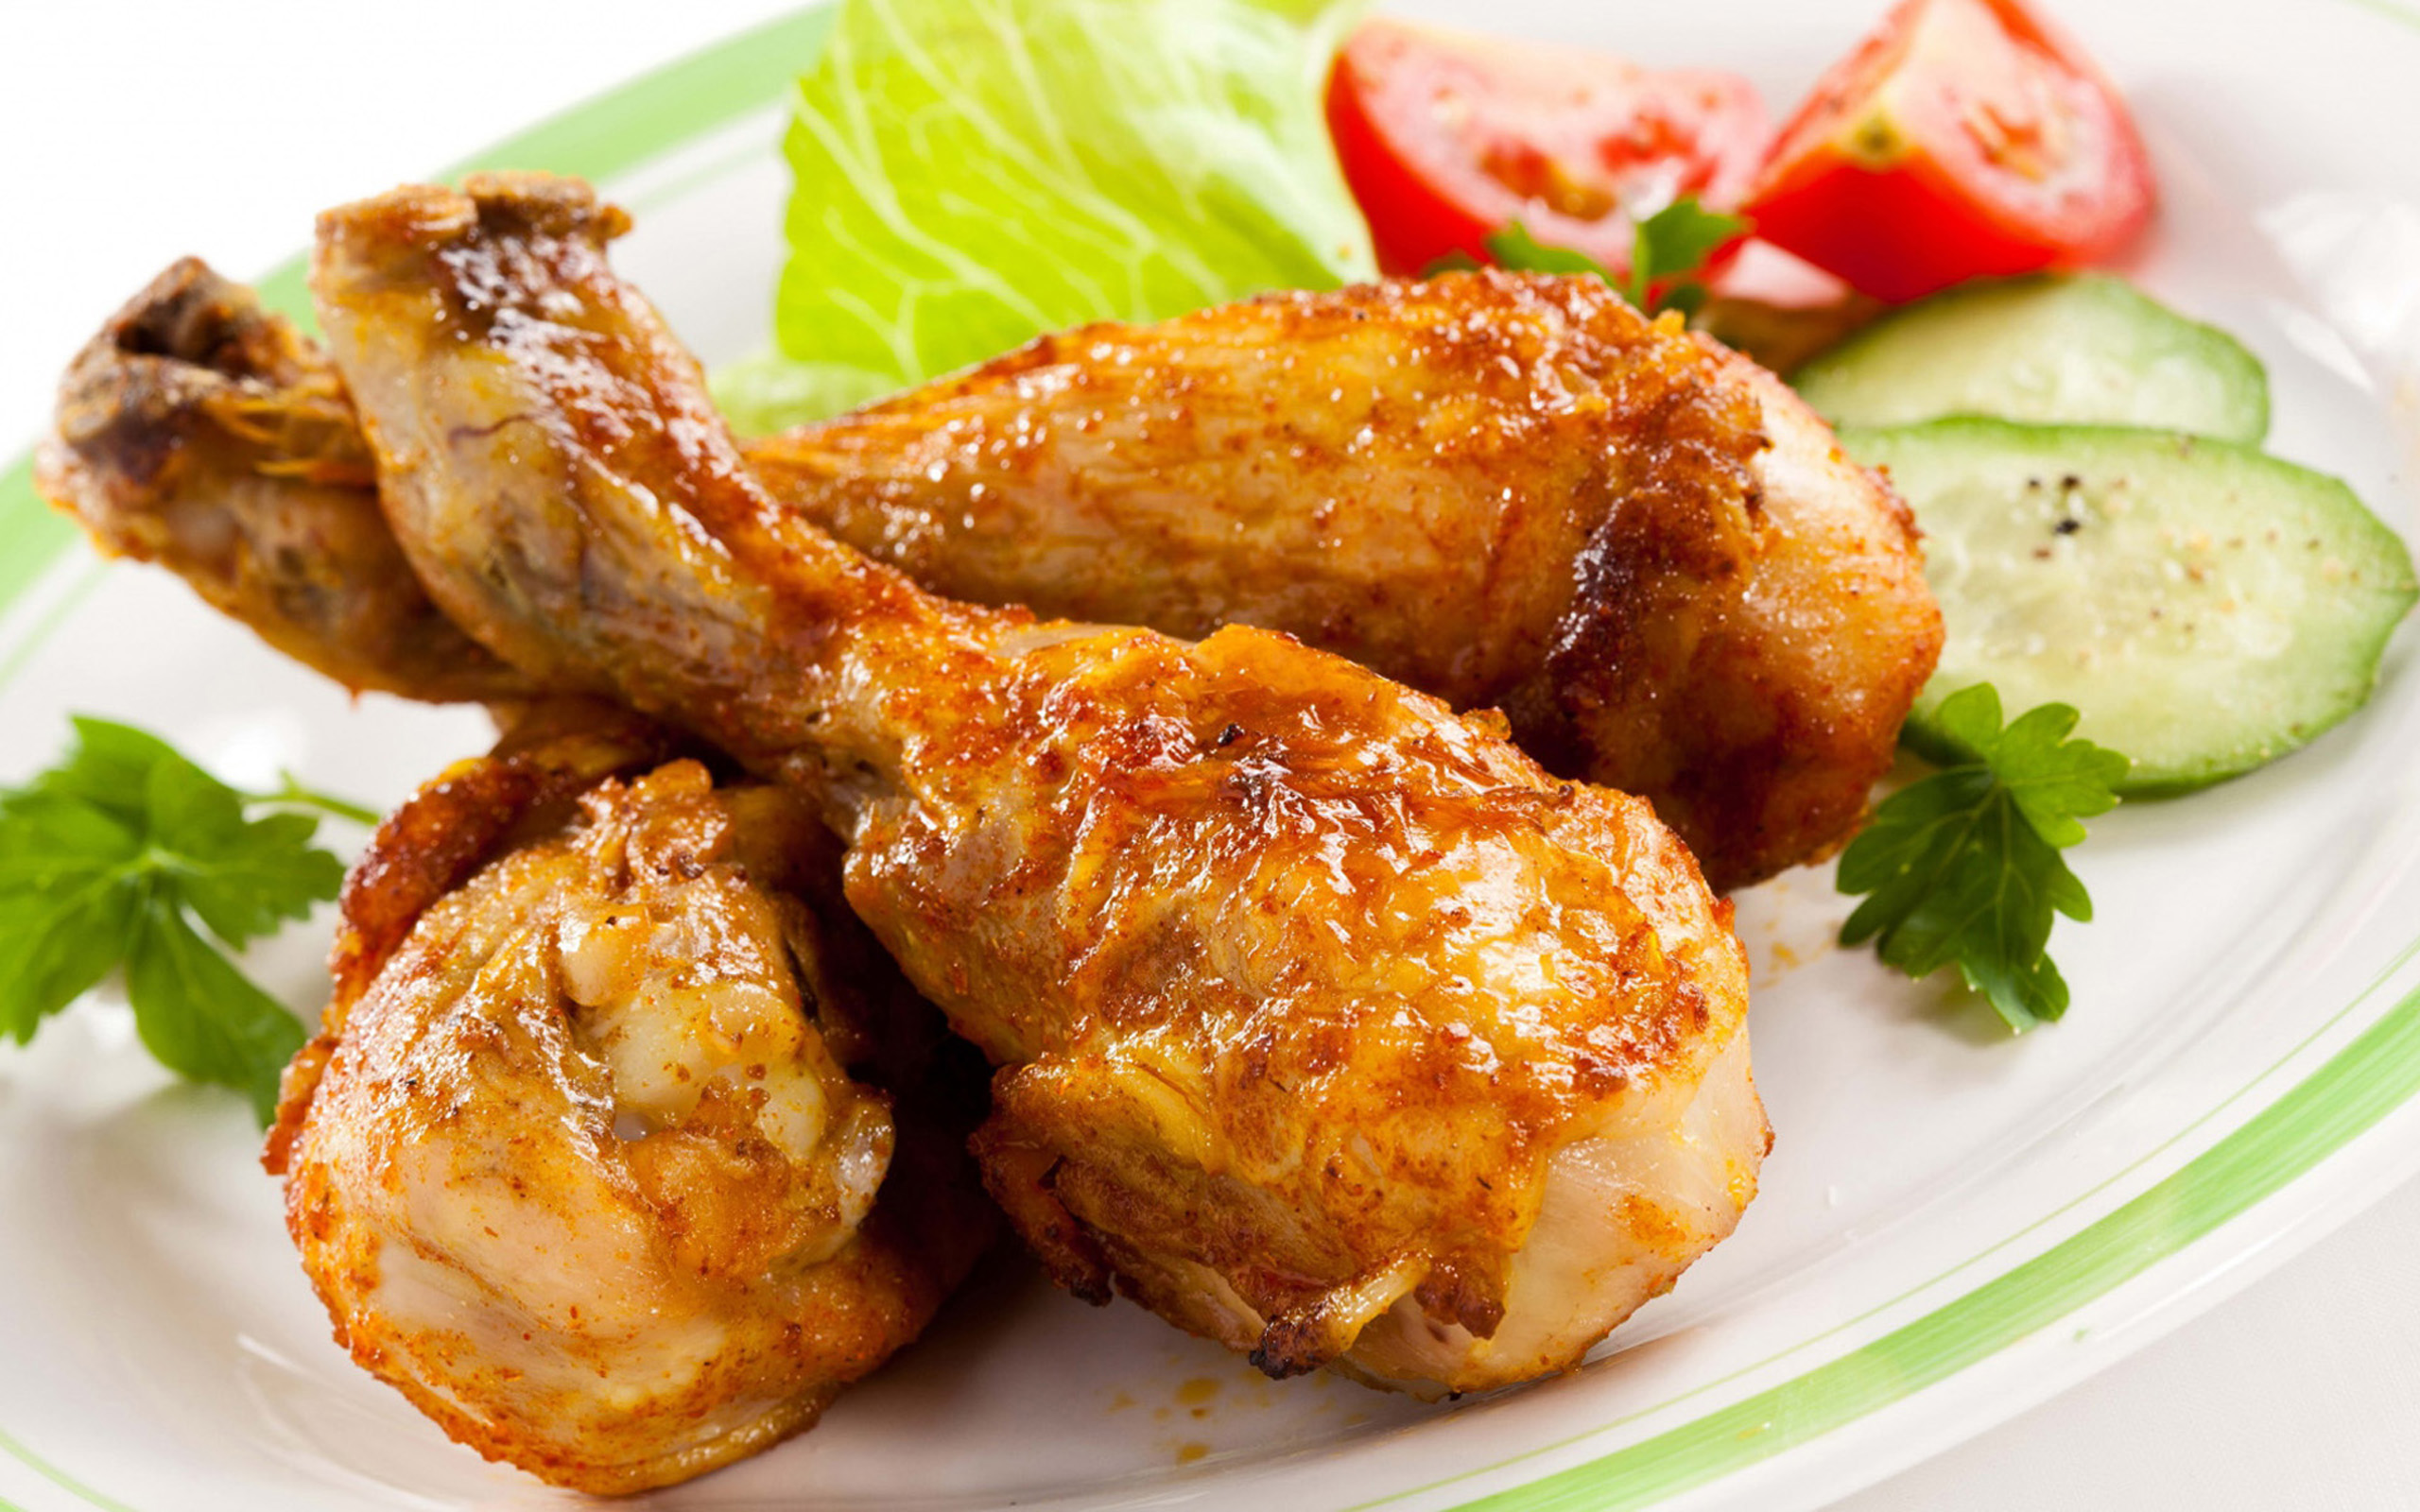 fried chicken hd wallpapers